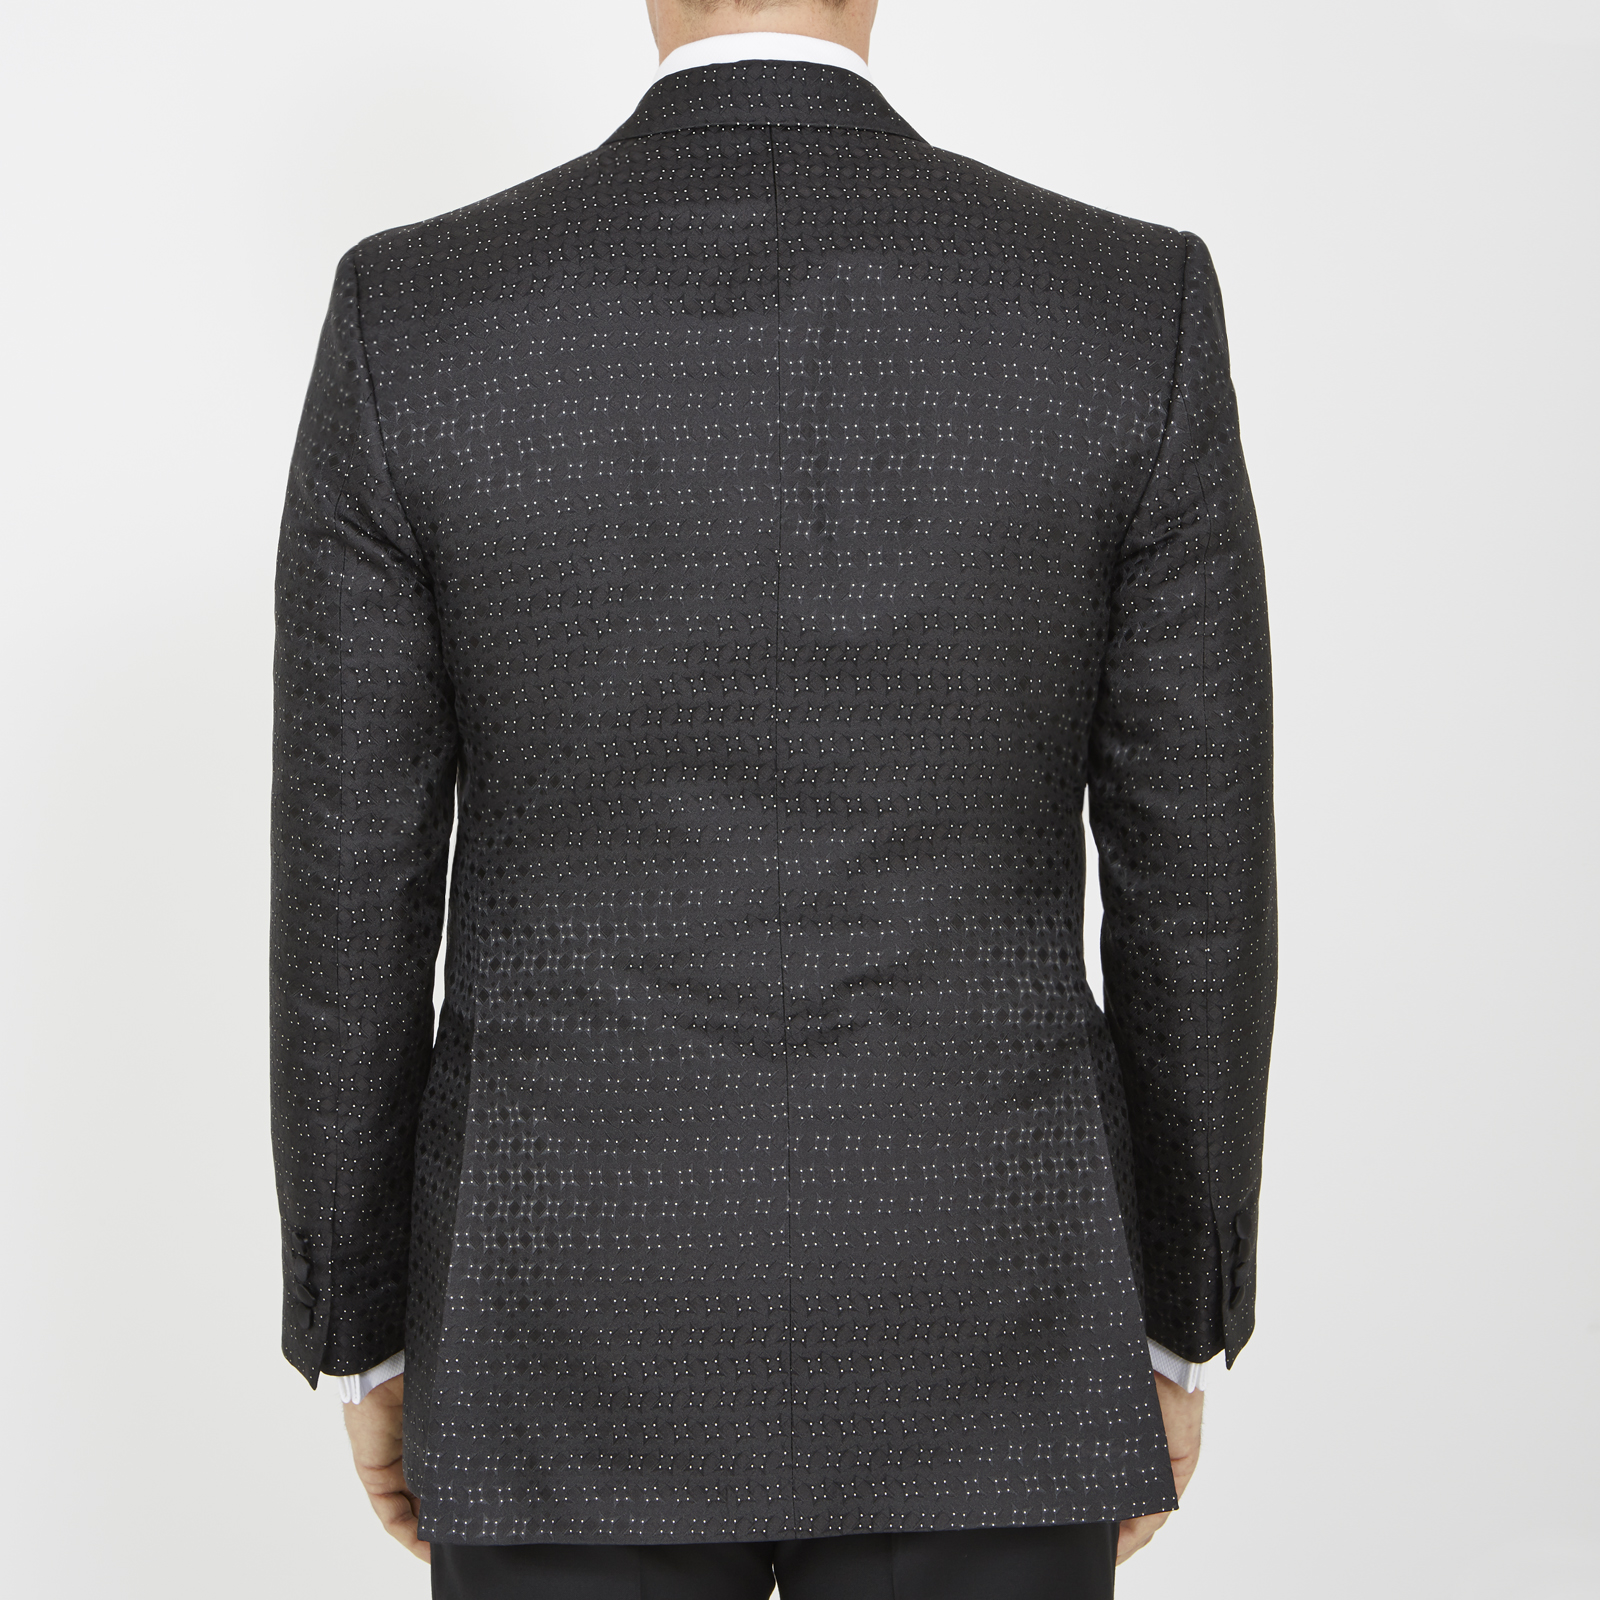 Turnbull & Asser Exclusive Triangle Shiny Dots Black Silk Tuxedo Jacket in Grey for Men